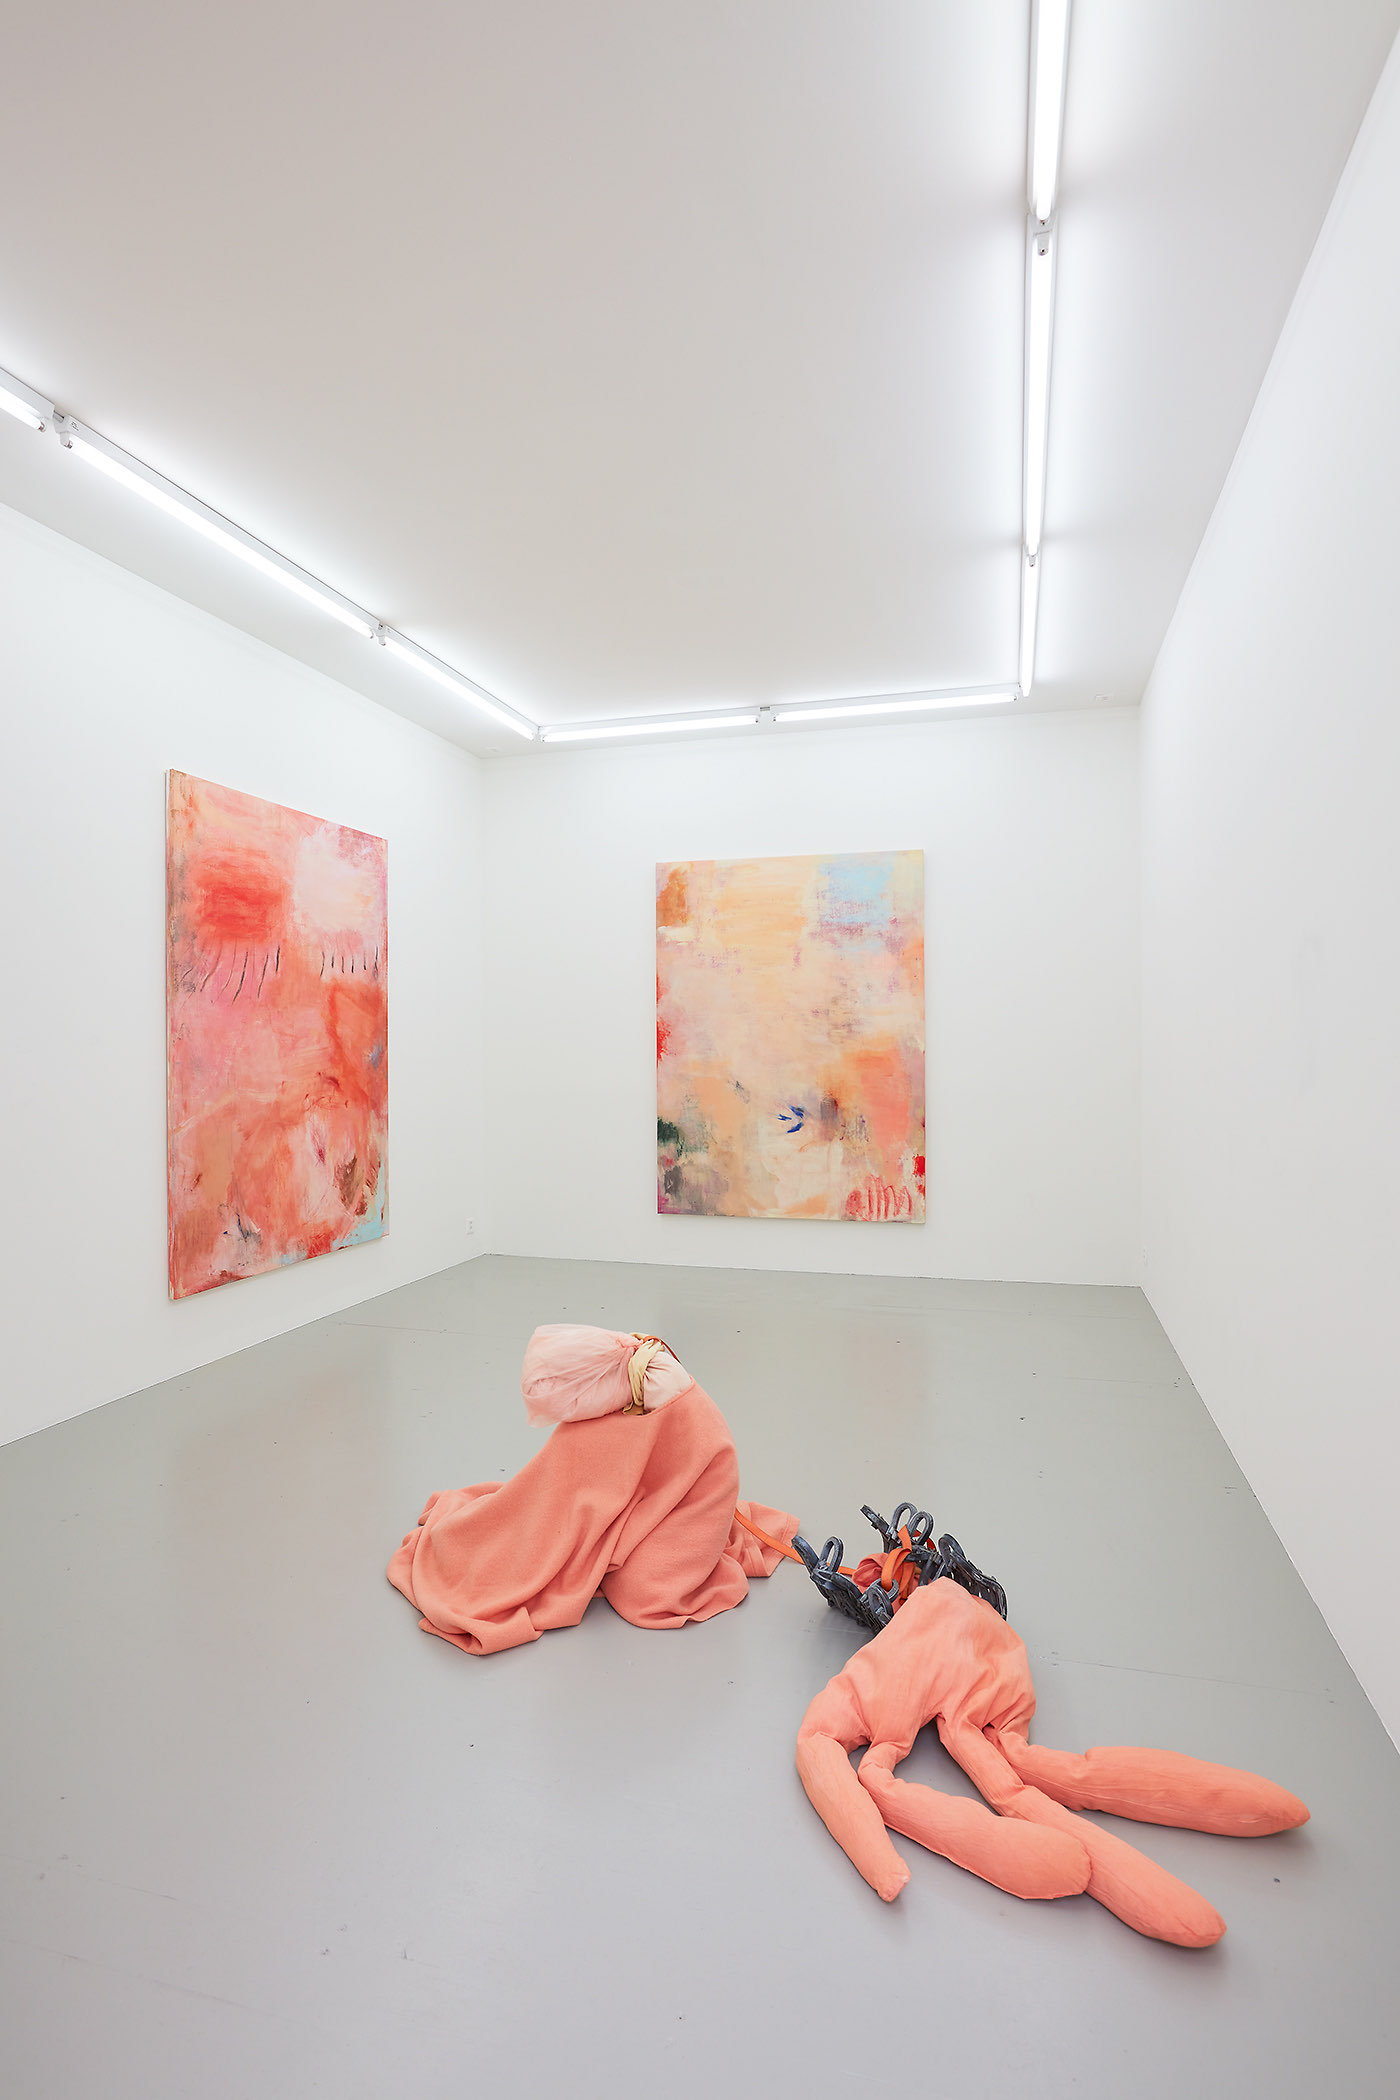 Installation Views: SALTS, Birsfelden Exhibition: TEETH & LIGHTNING Megan Rooney Curated by Samuel Leuenberger Exhibition. Installation shots: Moritz Schermbach Photography Courtesy: SALTS & the Artist